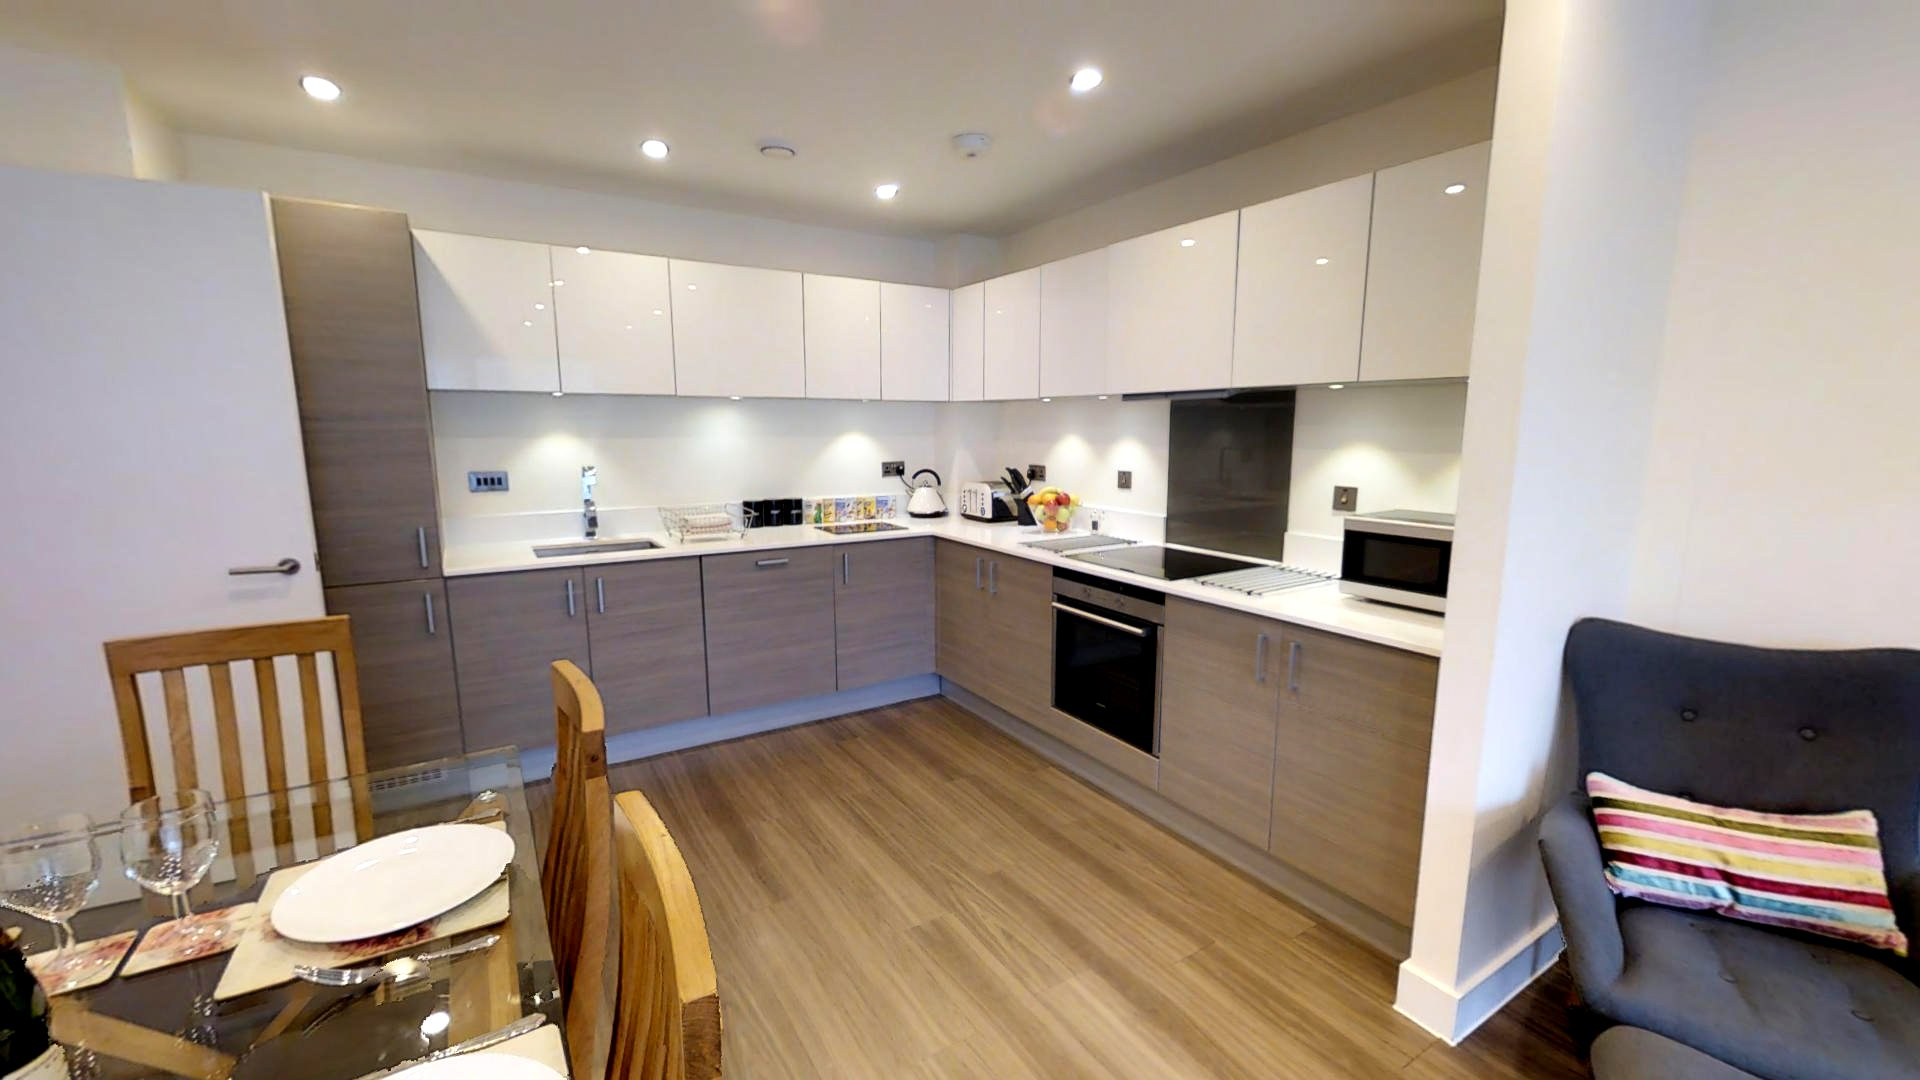 Serviced-Accommodation-Cambridge- Stylish-Short-Let-Apartments- -24h-reception- -Free-Wifi-&-Parking- -Lift- 0208-6913920 -Urban-Stay